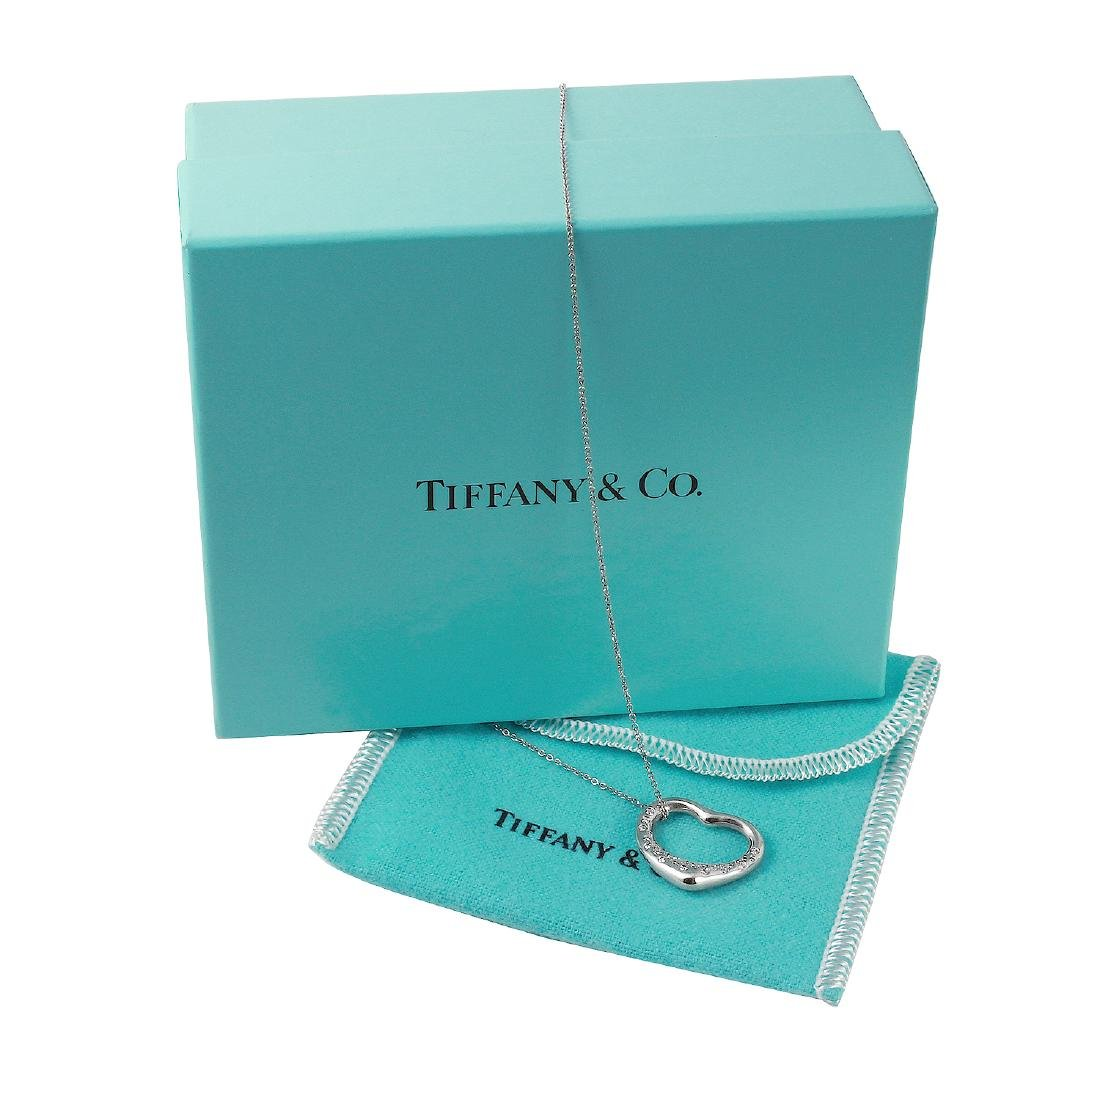 Tiffany & Co. Elsa Peretti Platinum Necklace